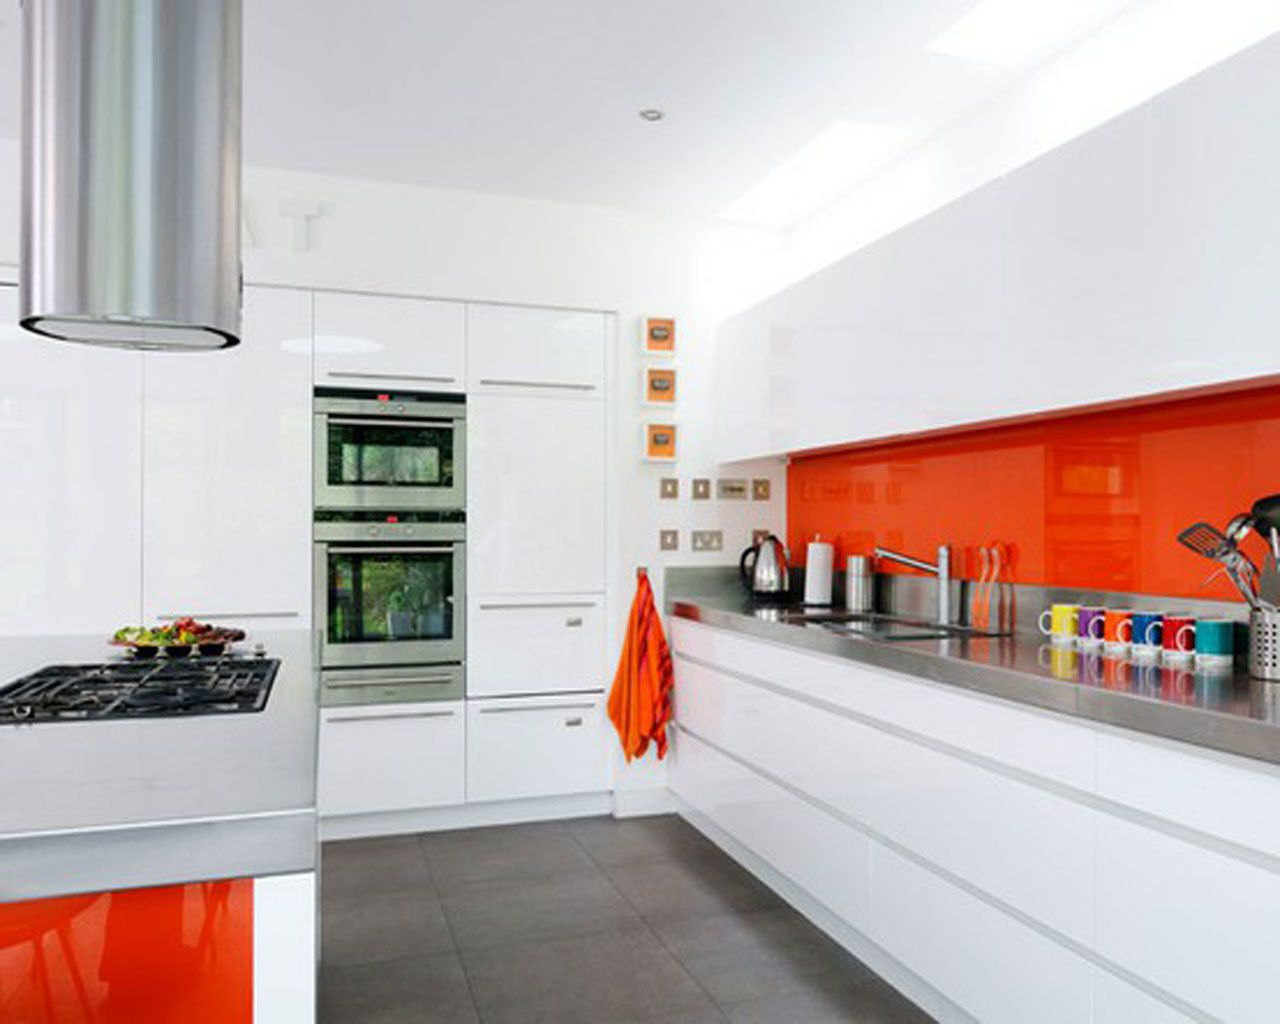 46 Reasons Why Your Kitchen Should Definitely Have White Cabinets. Open Style Kitchen Cabinets. 133 Carriage House Ideas Onmodern. 25 Scandinavian Kitchen Cabinets On